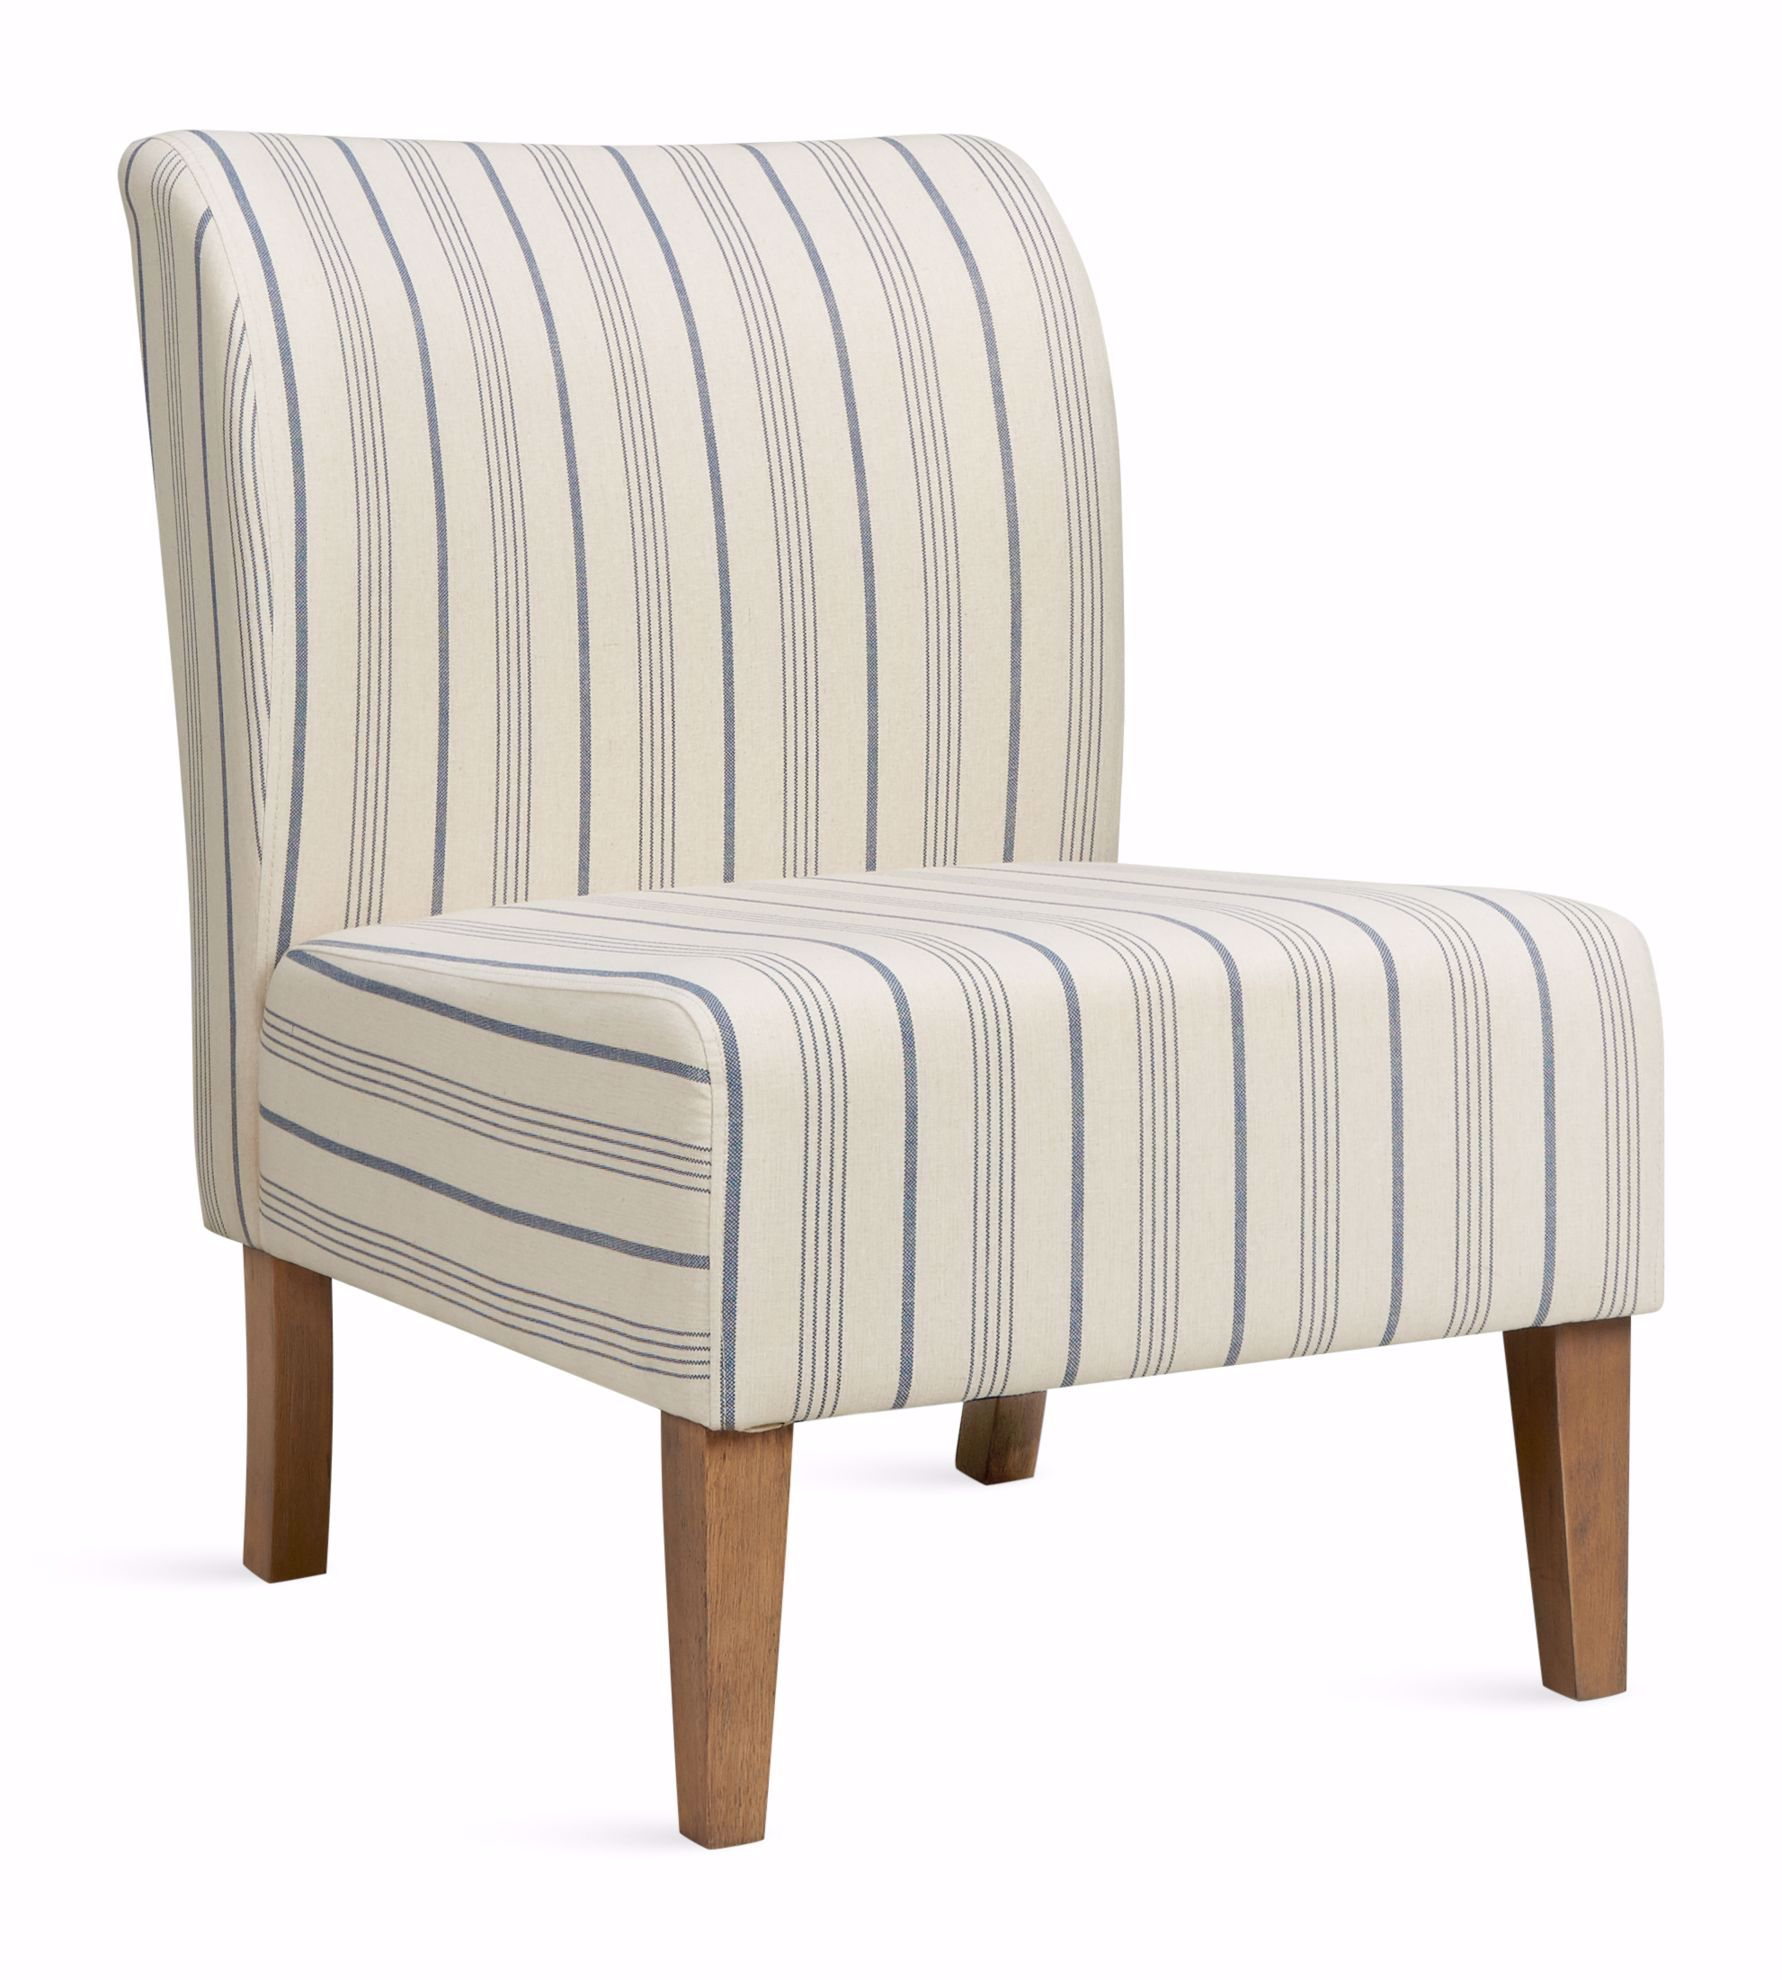 Picture of Triptis Striped Accent Chair